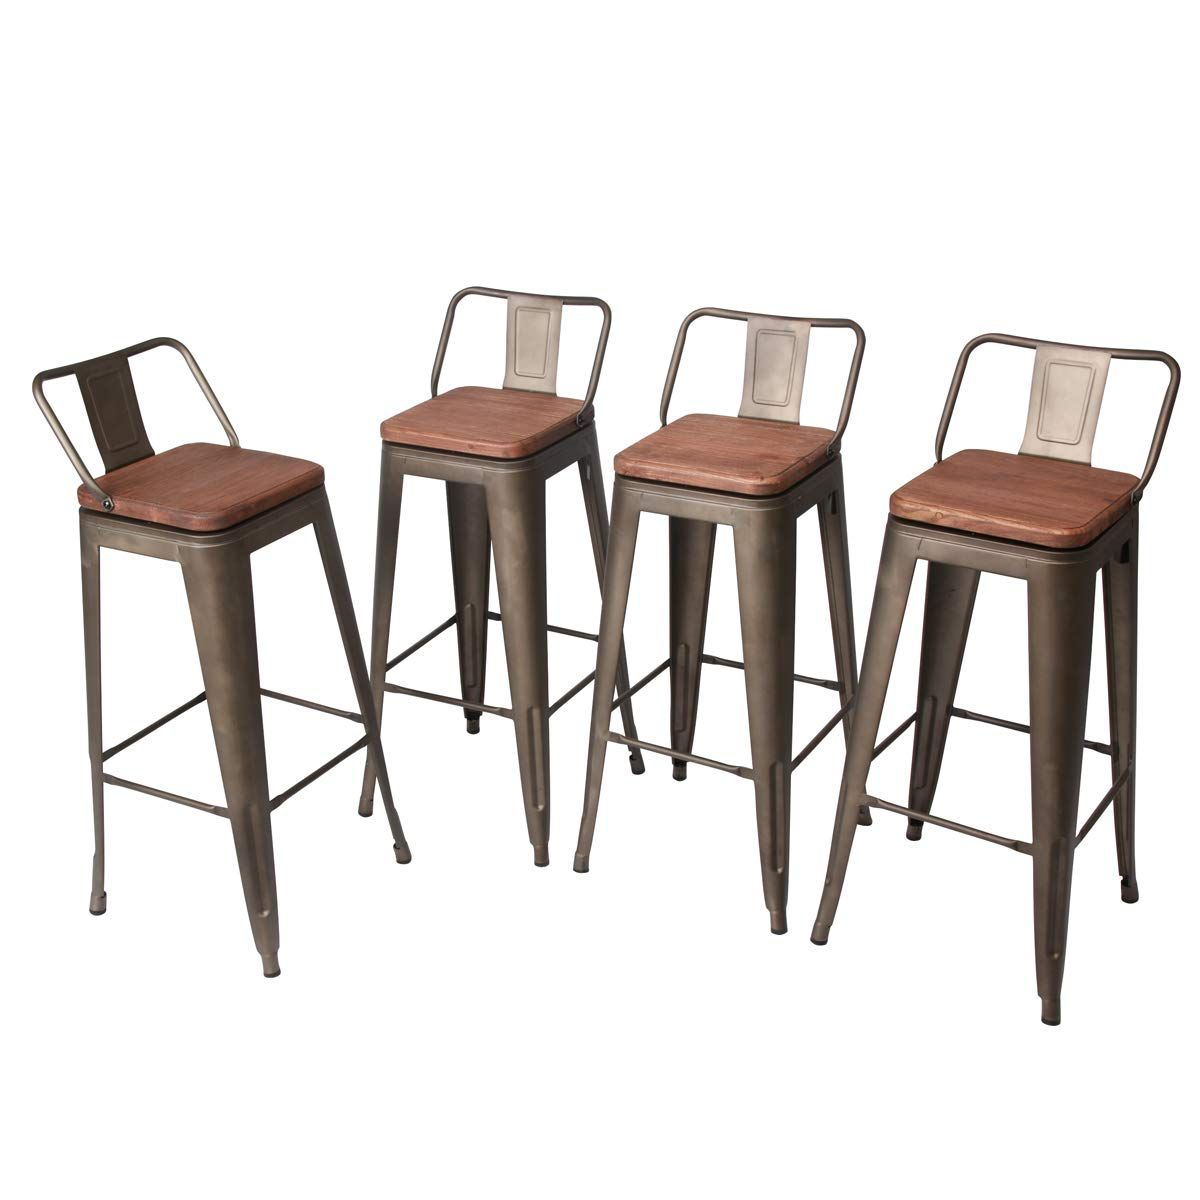 Andeworld Set Of 4 Swivel Counter Height Bar Stools Industrial